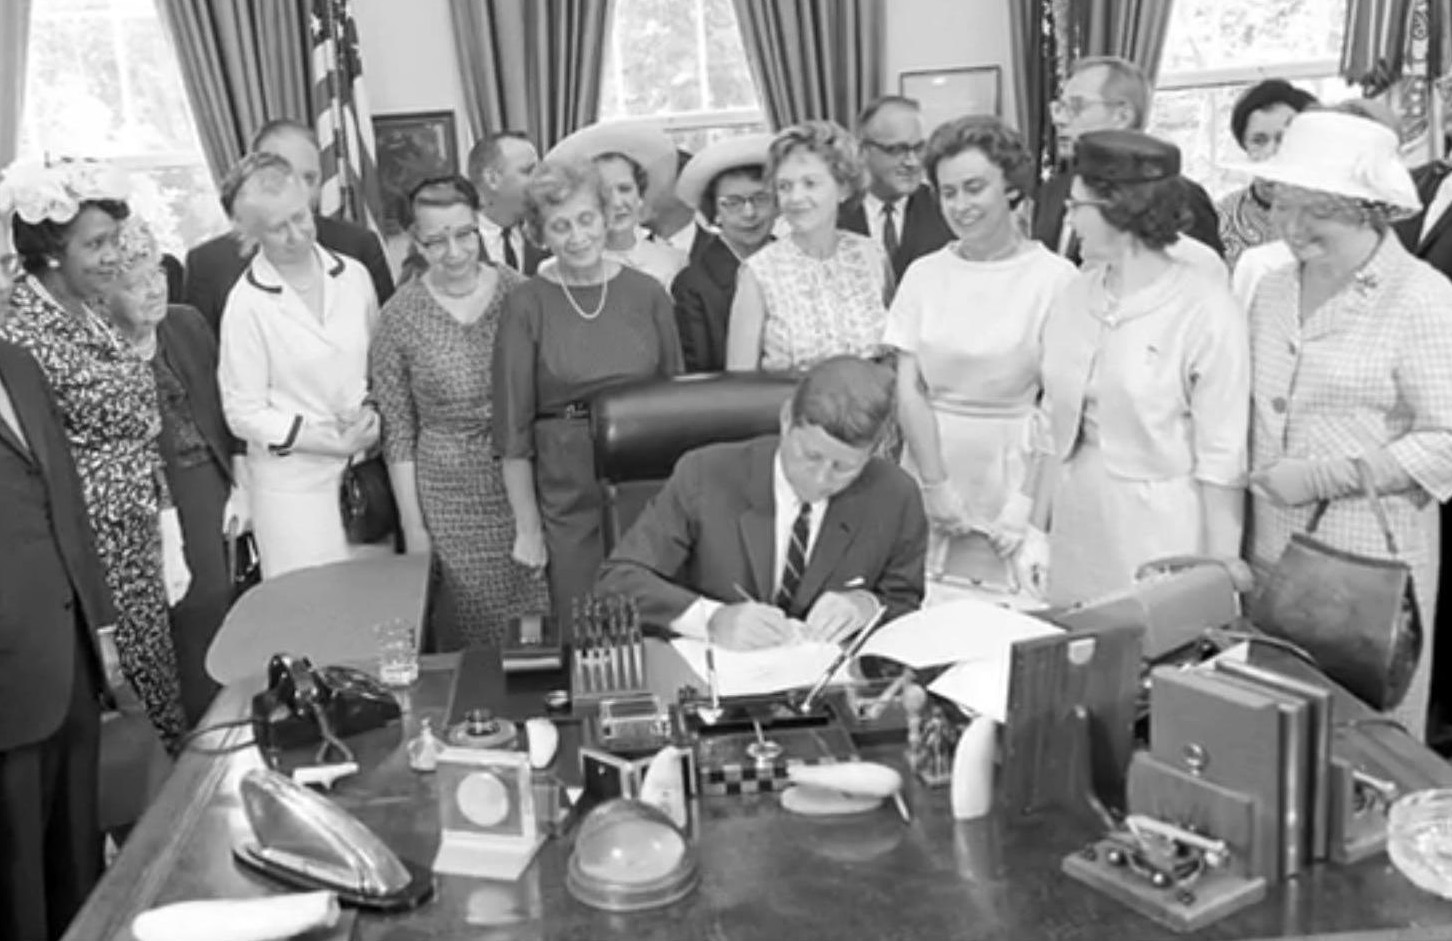 president john kennedy as signed the equal pay act into law About president john f kennedy signed the equal pay act into law in 1963, guaranteeing equal pay for women and men doing the same work for the same employer.